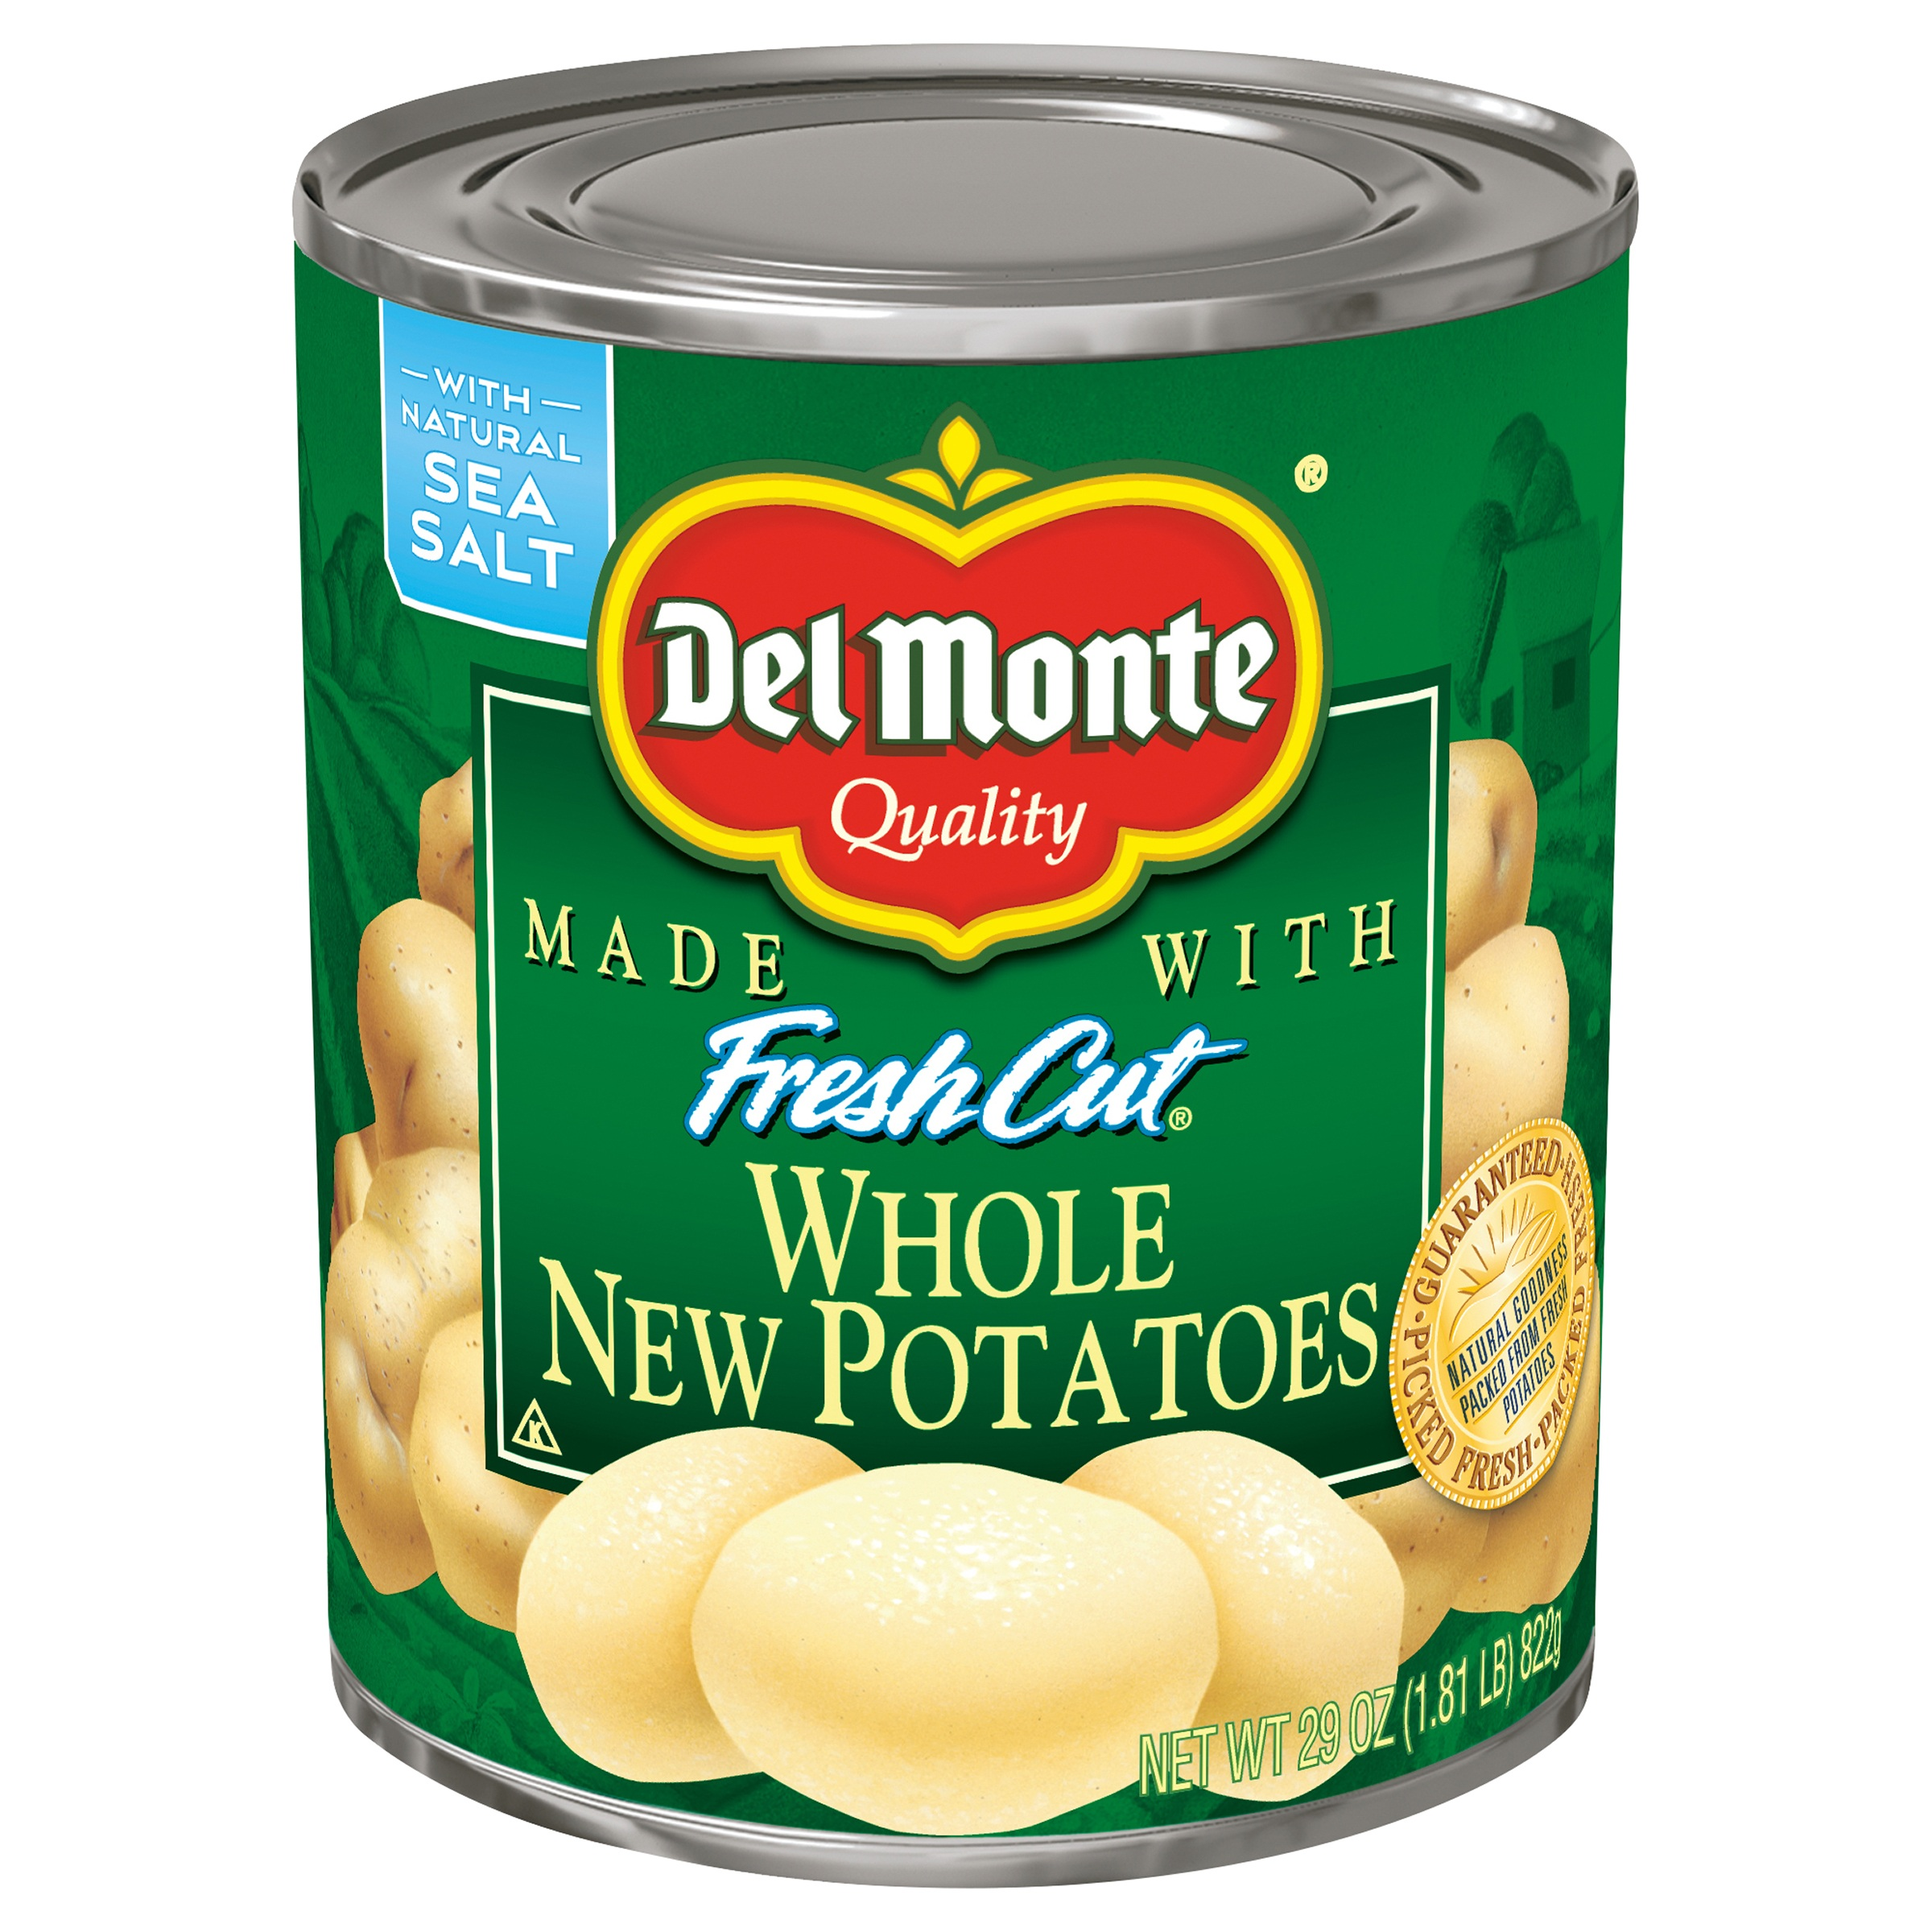 Del Monte Fresh Cut Whole New Potatoes, 29 Oz